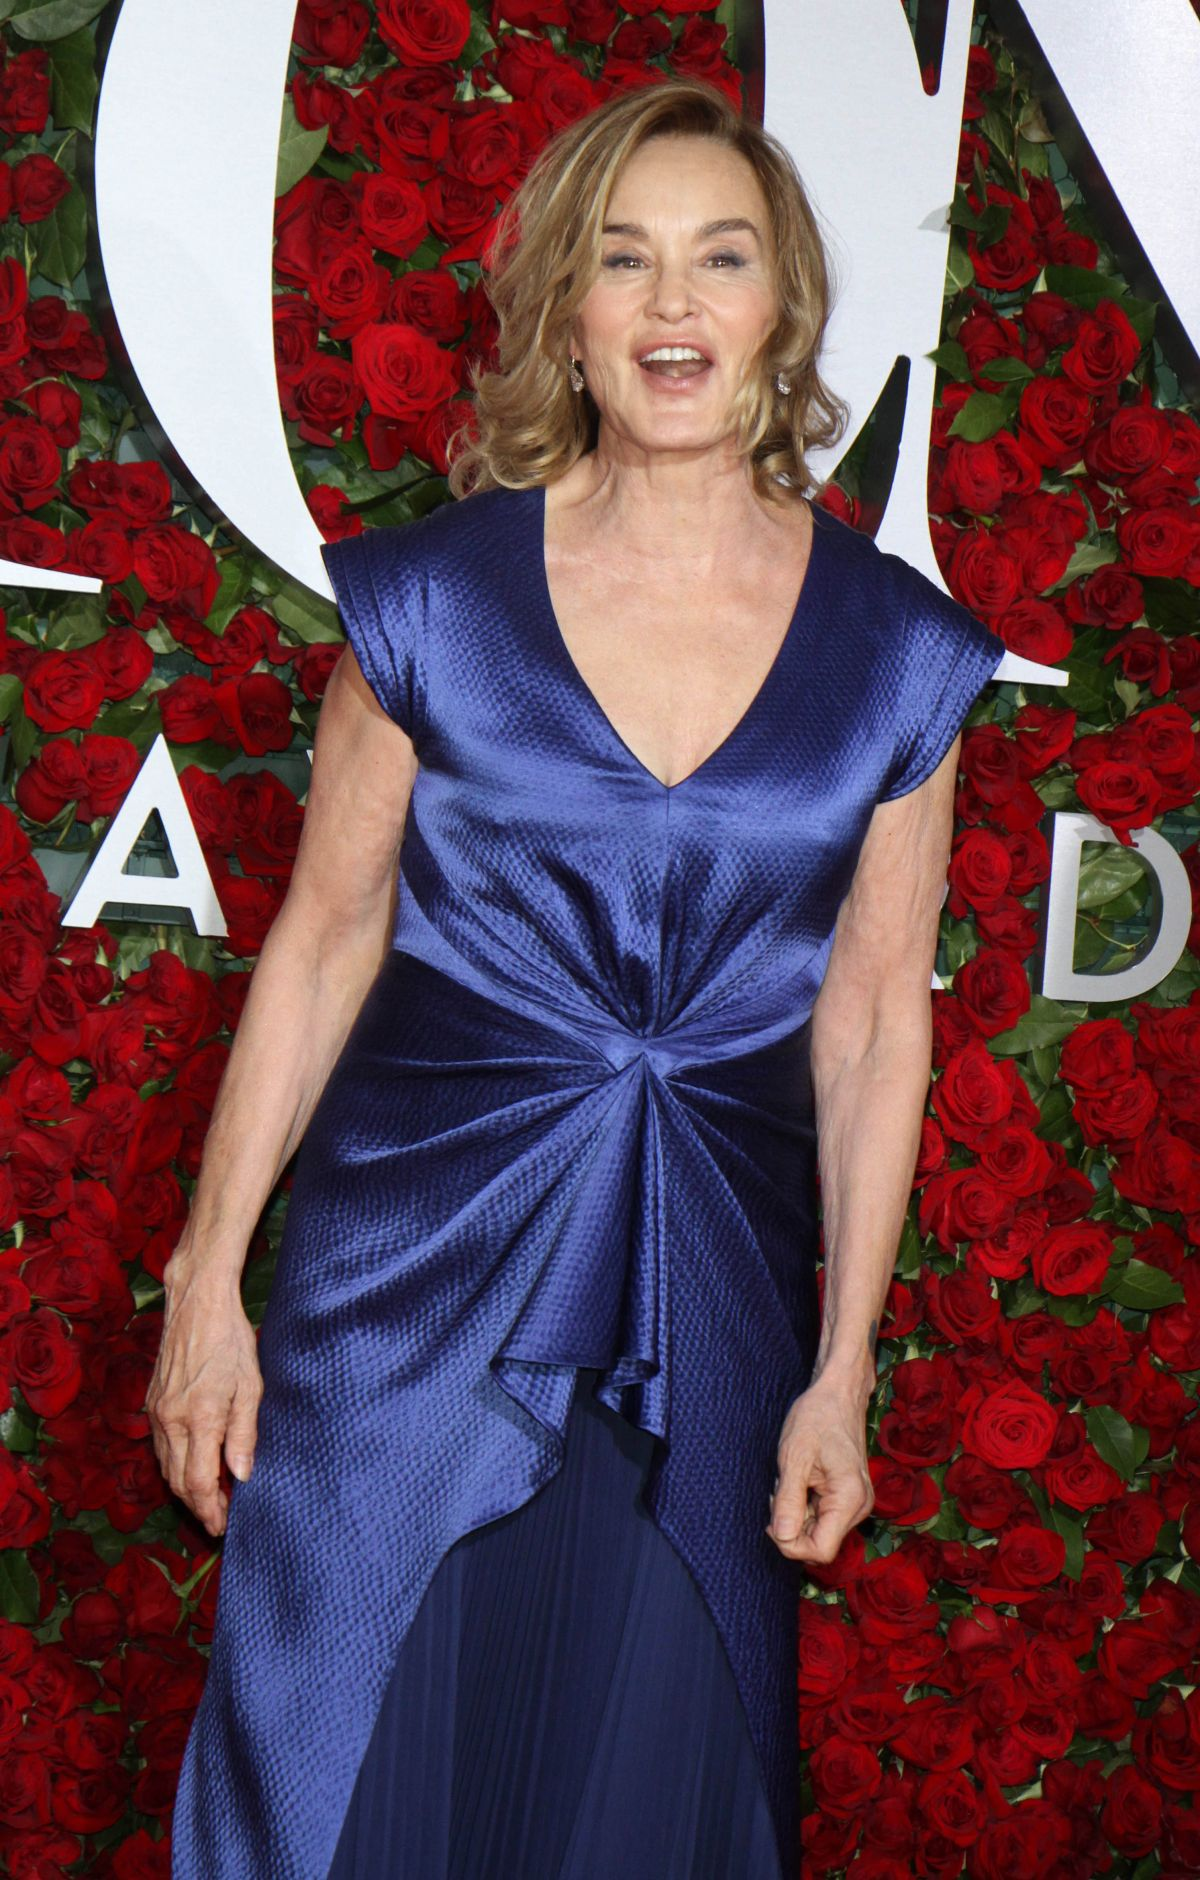 JESSICA LANGE at 70th Annual Tony Awards in New York 06/12/2016